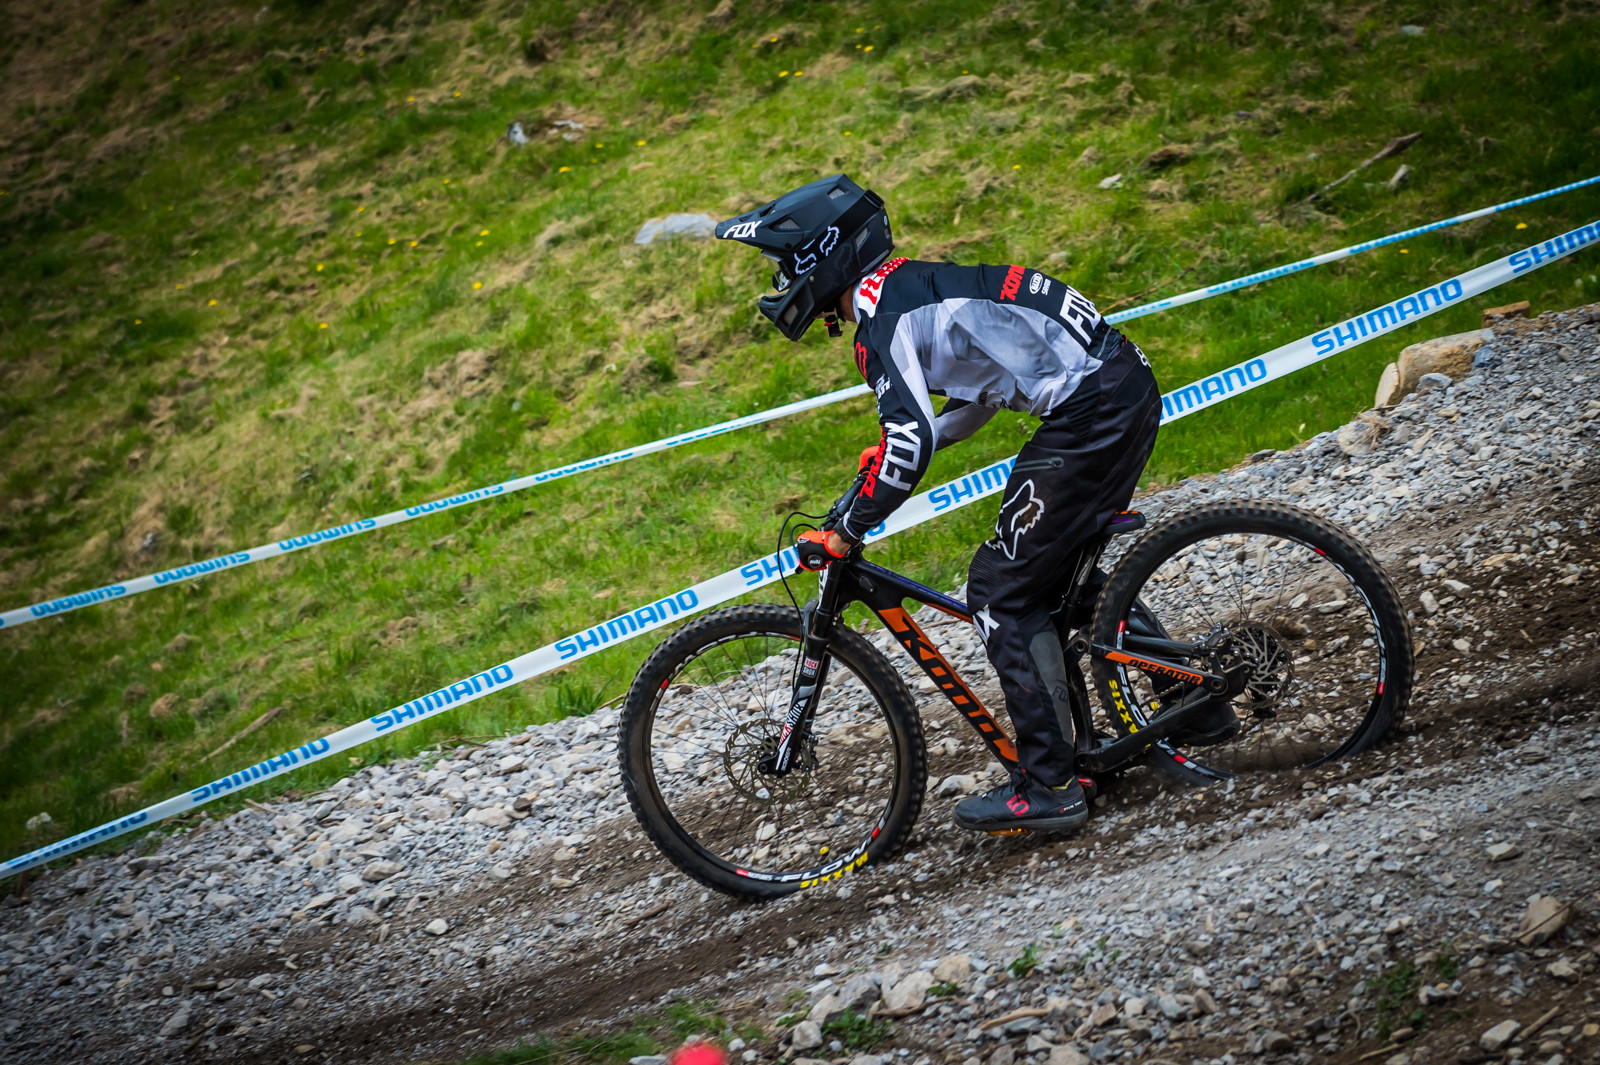 Connor Fearon G-Out Project - Lourdes World Cup - G-Out Project - Lourdes World Cup - Mountain Biking Pictures - Vital MTB